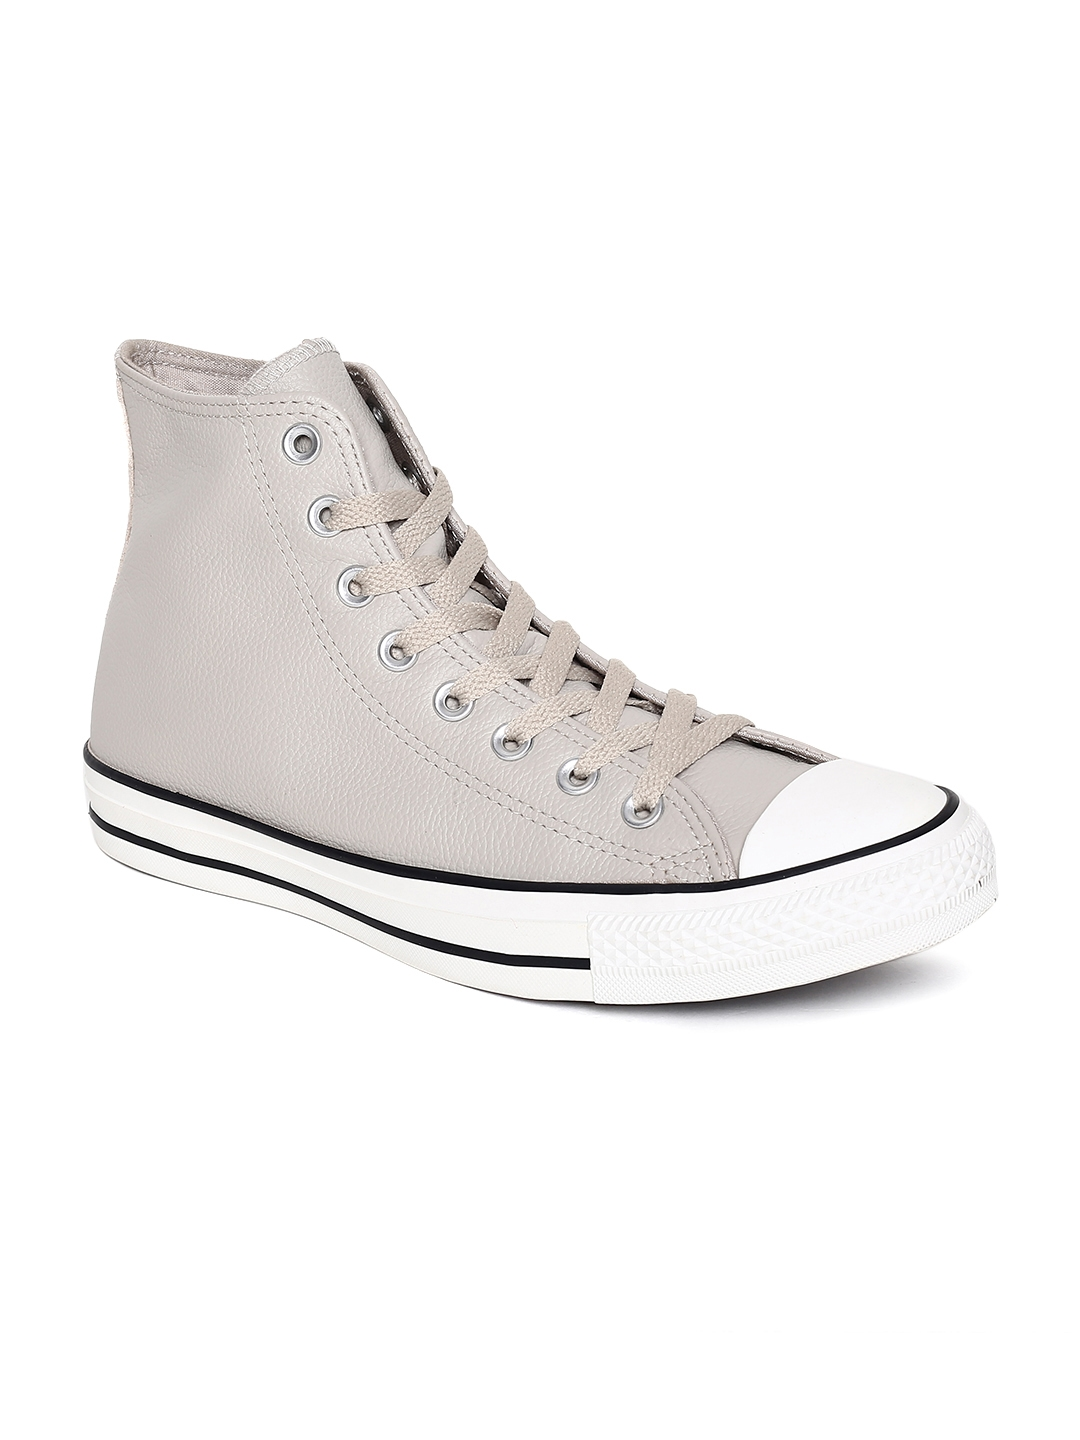 9a5b7a0b1771 Buy Converse Unisex Cream Coloured Solid Leather Mid Top Sneakers ...